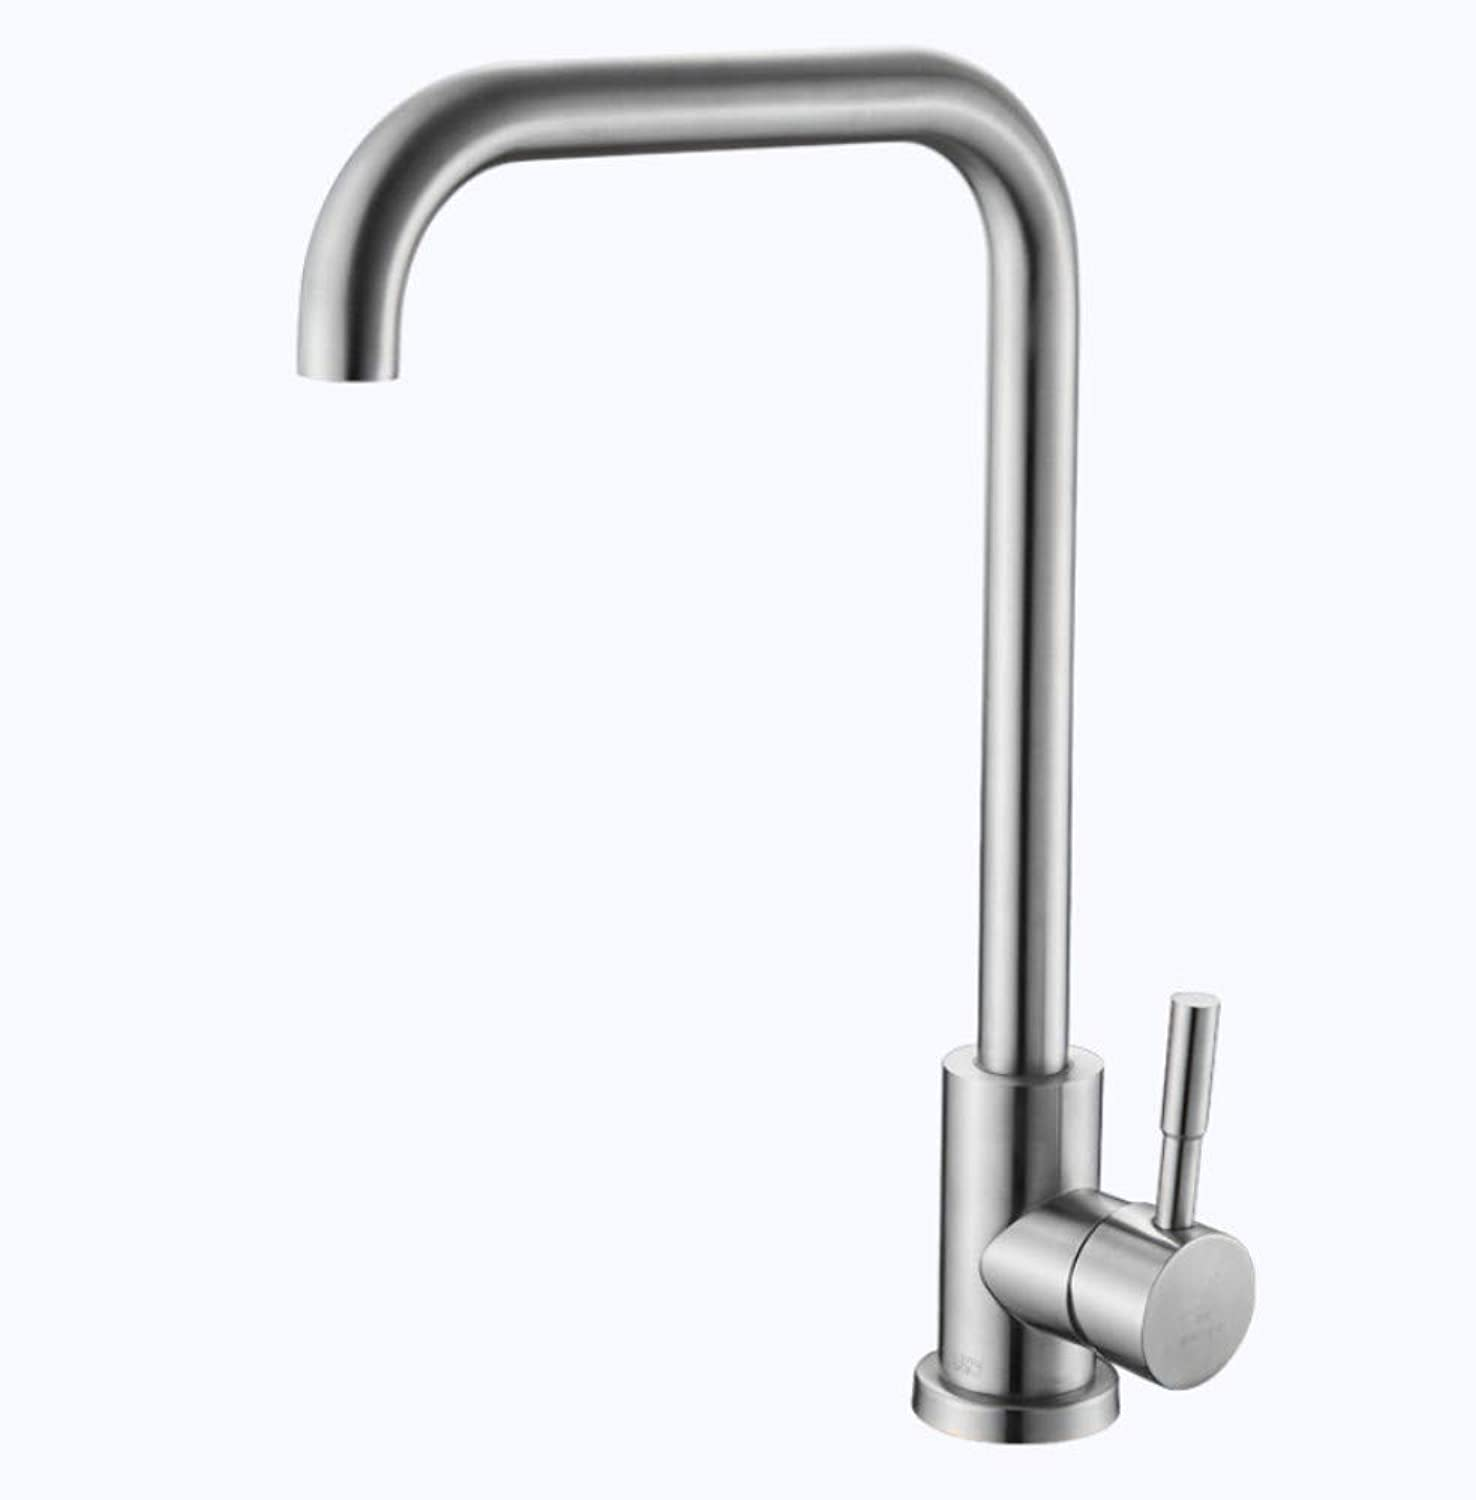 Kitchen Faucet Dishwasher Faucet Cold and Hot Water Tank Ceramic Spool 304 Stainless Steel redary Faucet